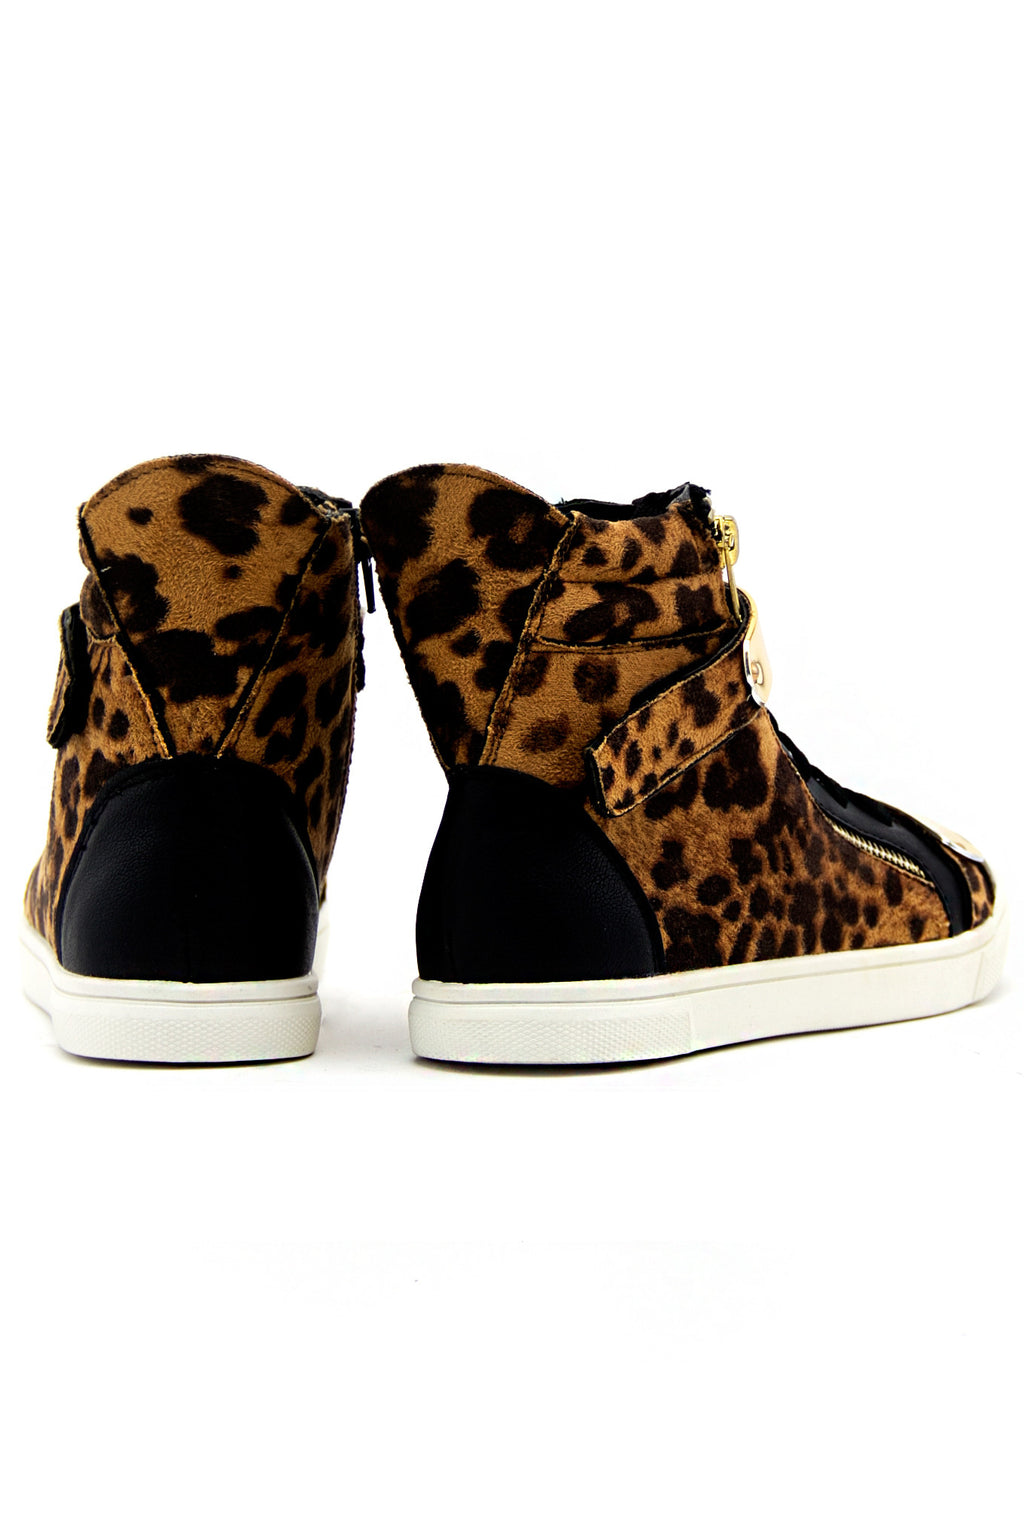 ROXANNE GOLD PLATED LEOPARD SNEAKER - Brown - Haute & Rebellious